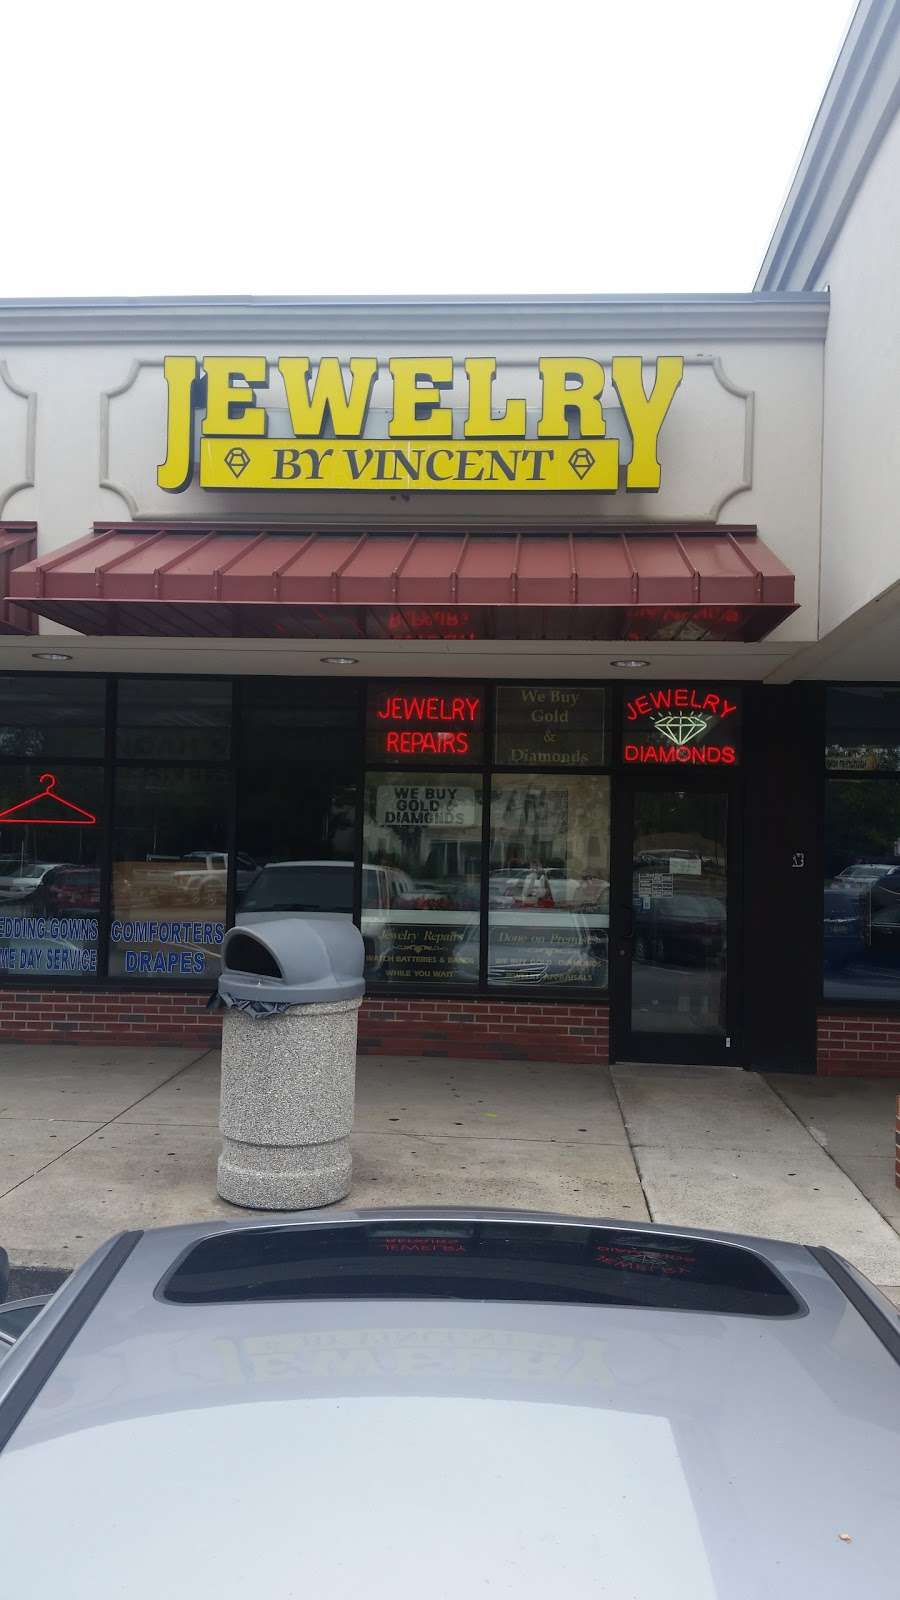 Jewelry By Vincent - jewelry store  | Photo 1 of 1 | Address: 842 River Rd, New Milford, NJ 07646, USA | Phone: (201) 265-6884